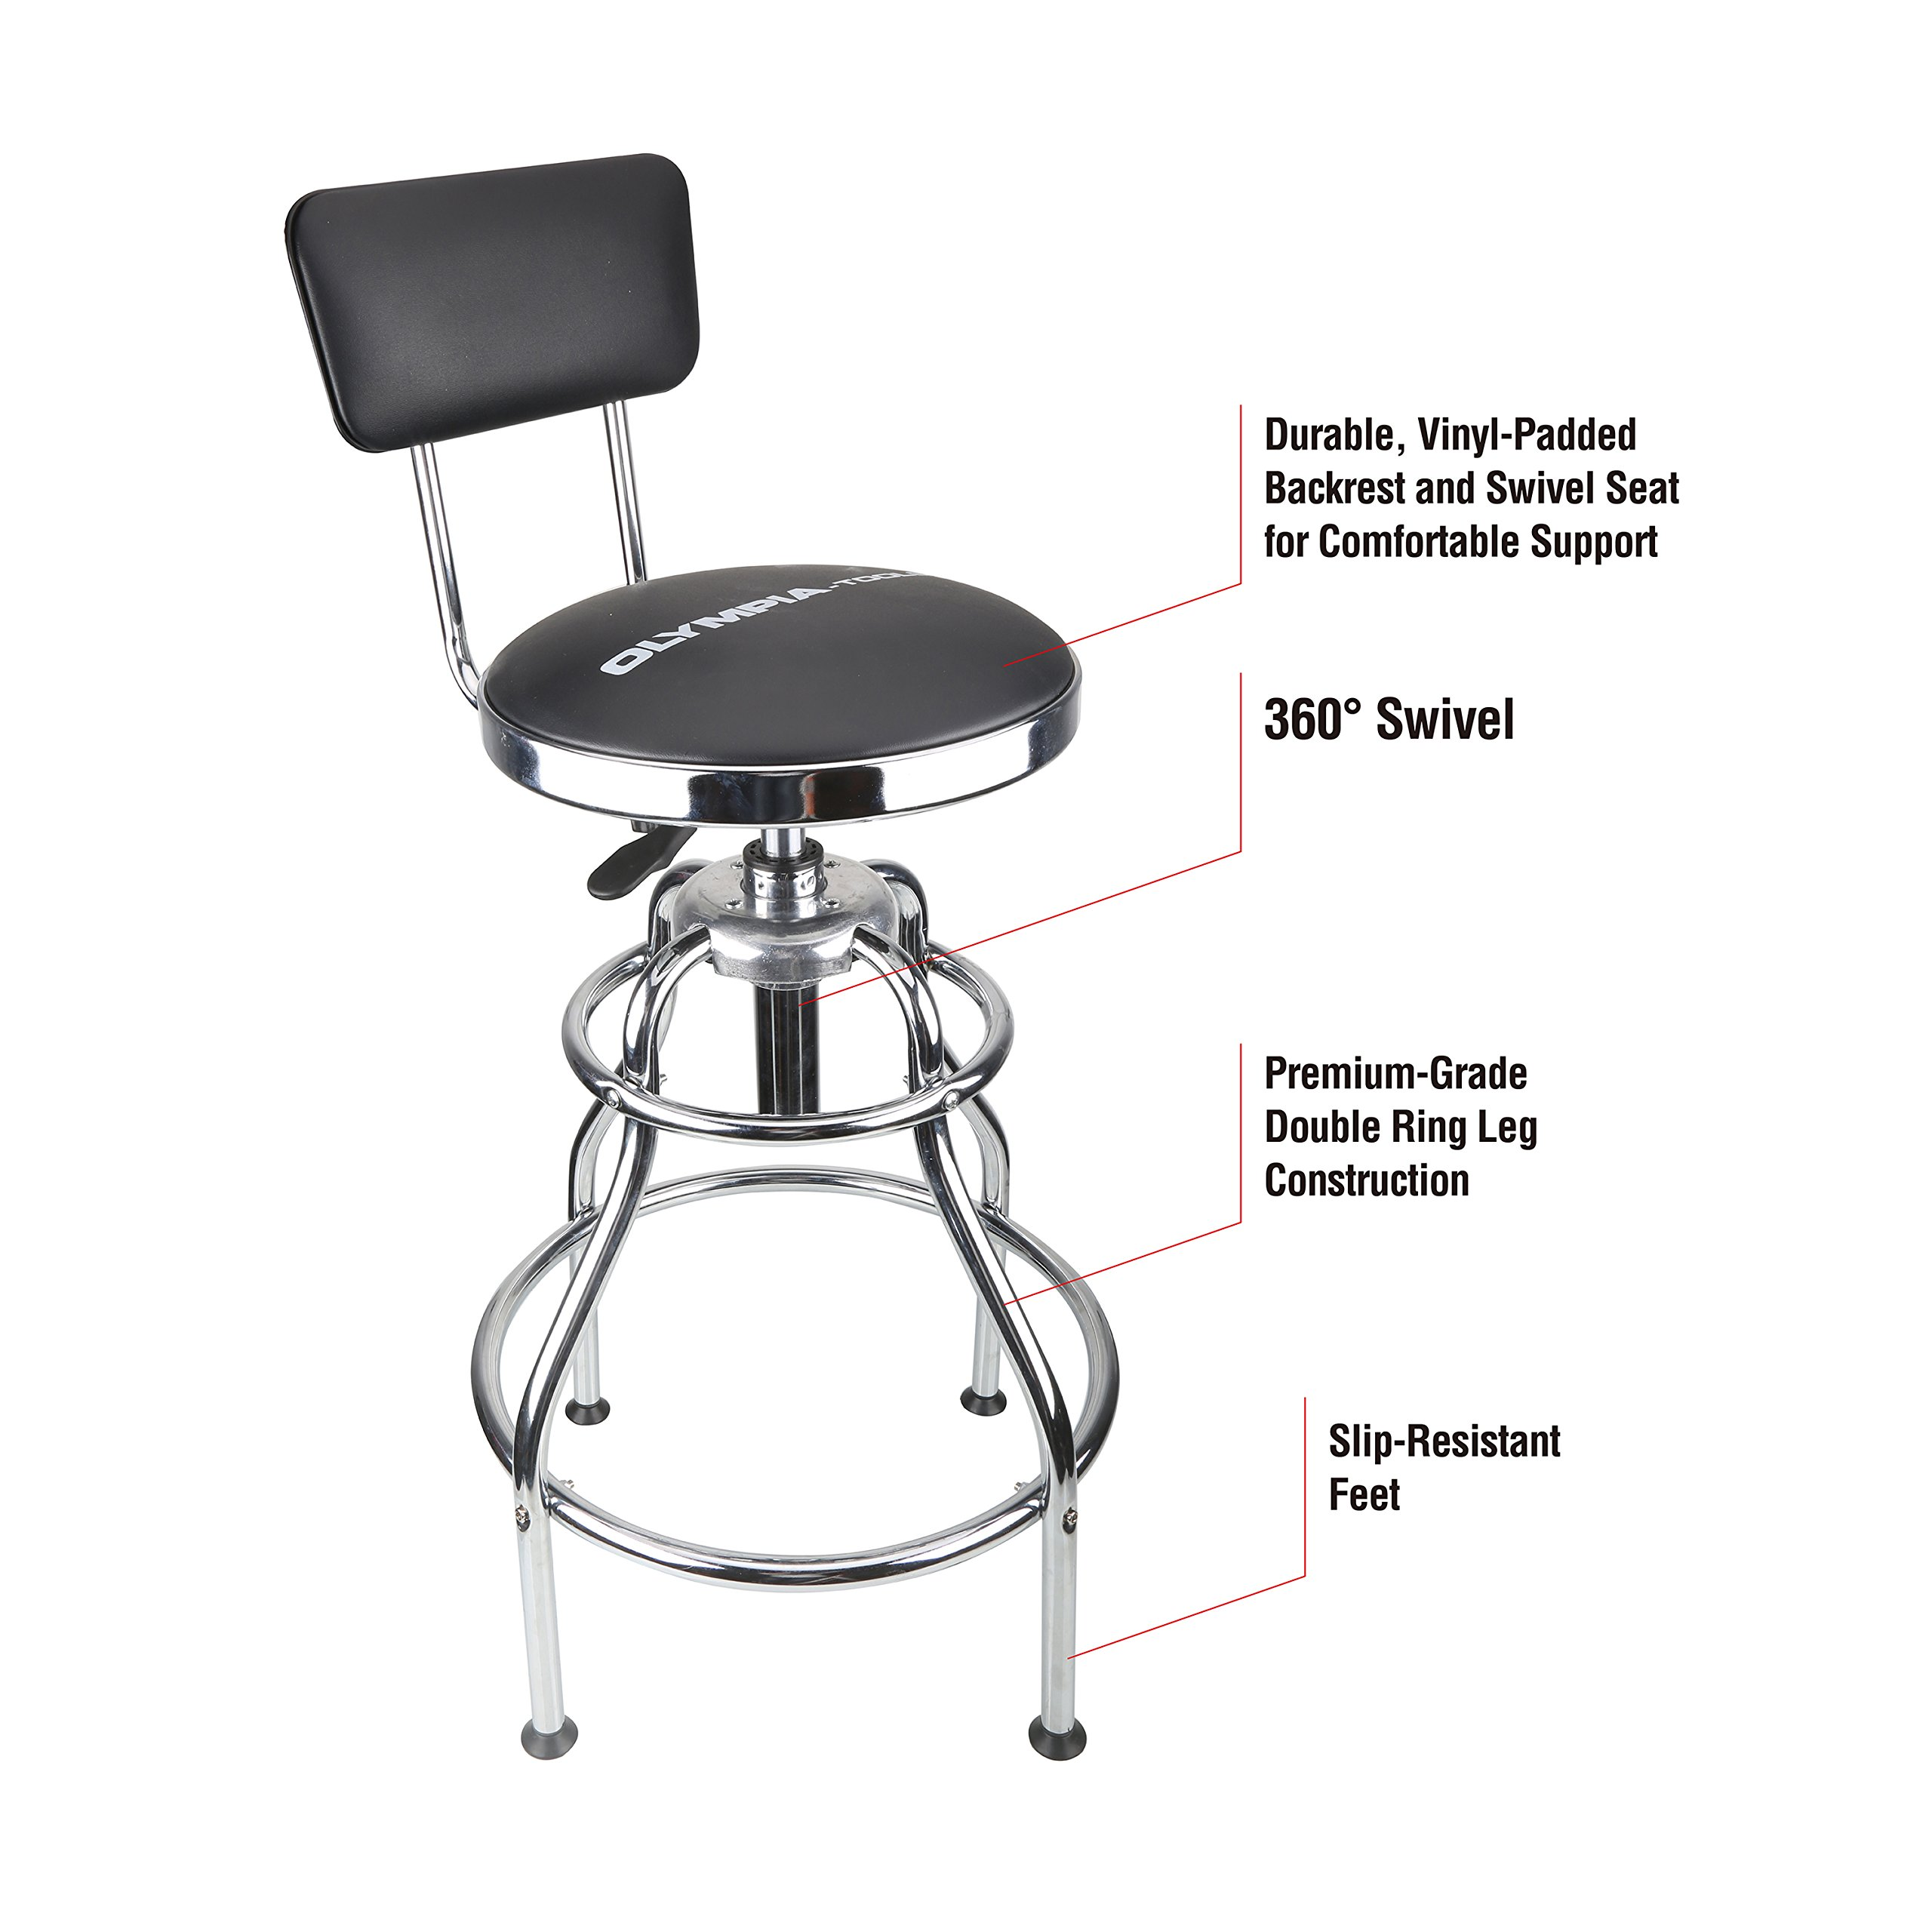 Olympia Tools 82-738 Metallic-Fiber Adjustable Hydraulic Stool with Easy to Clean seat Wipes and Padded Vinyl backrest,Slip-Resistant feet, Black